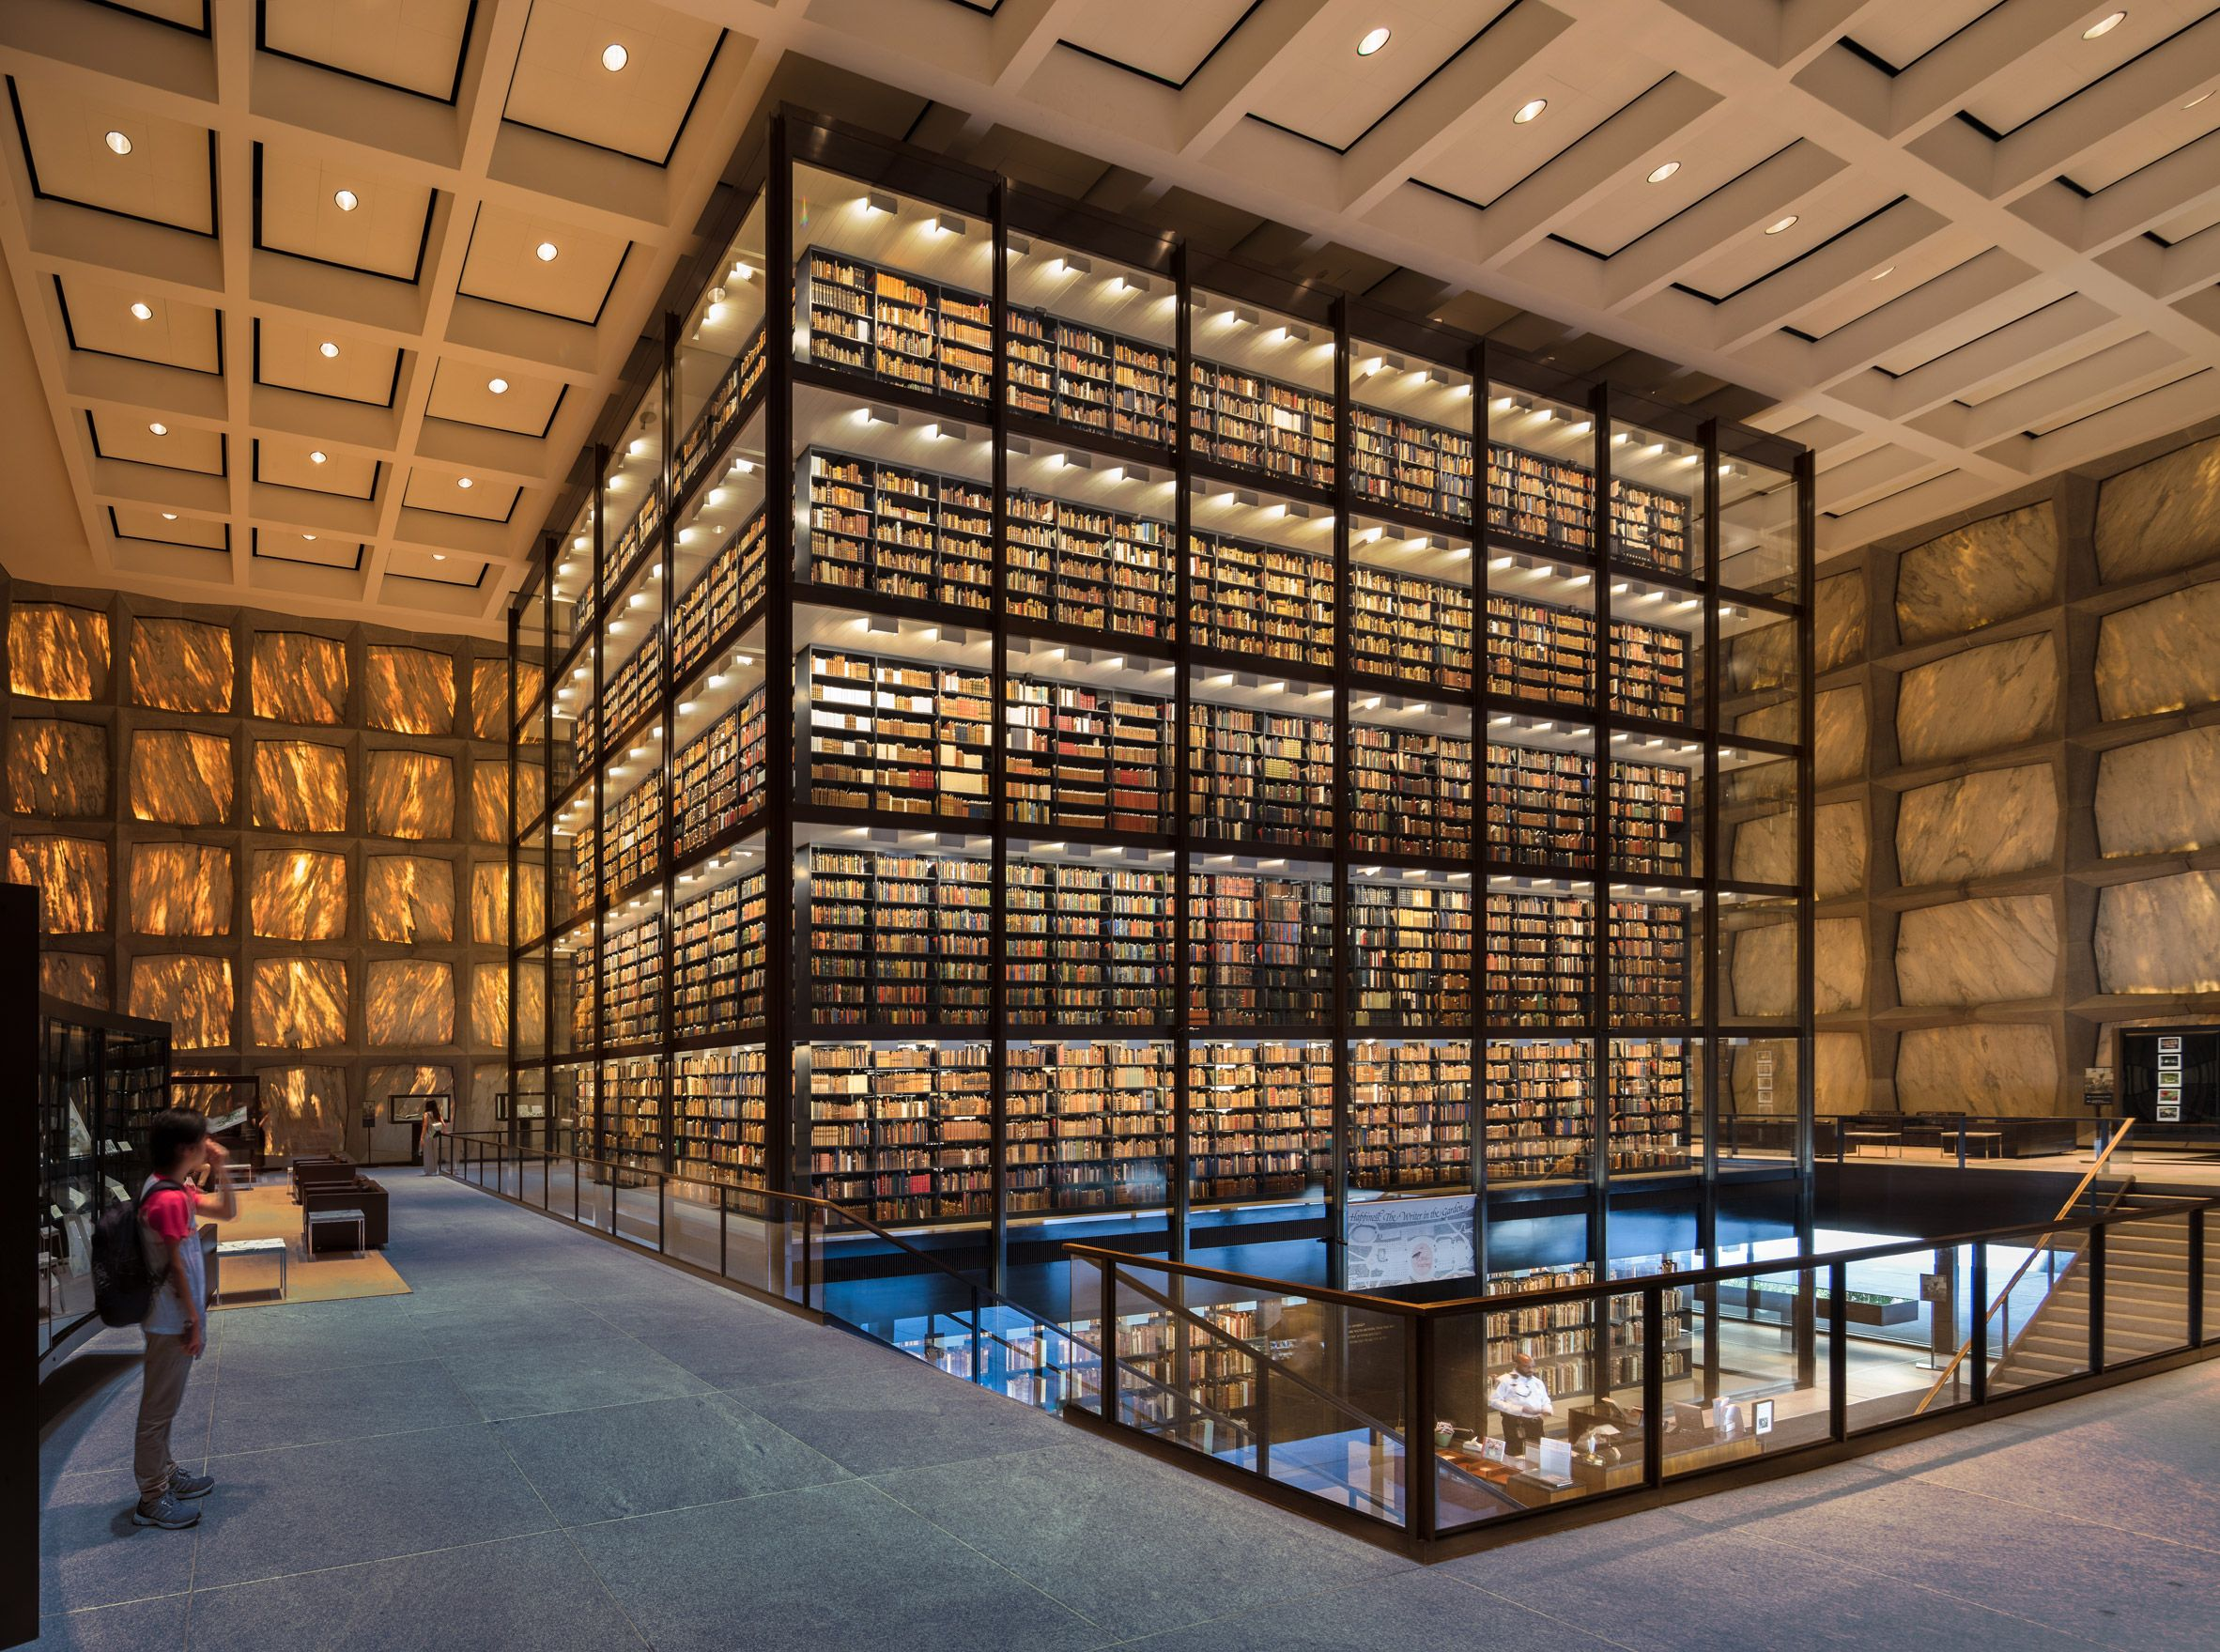 Beinecke Library By Gordon Bunshaft New Haven Connecticut